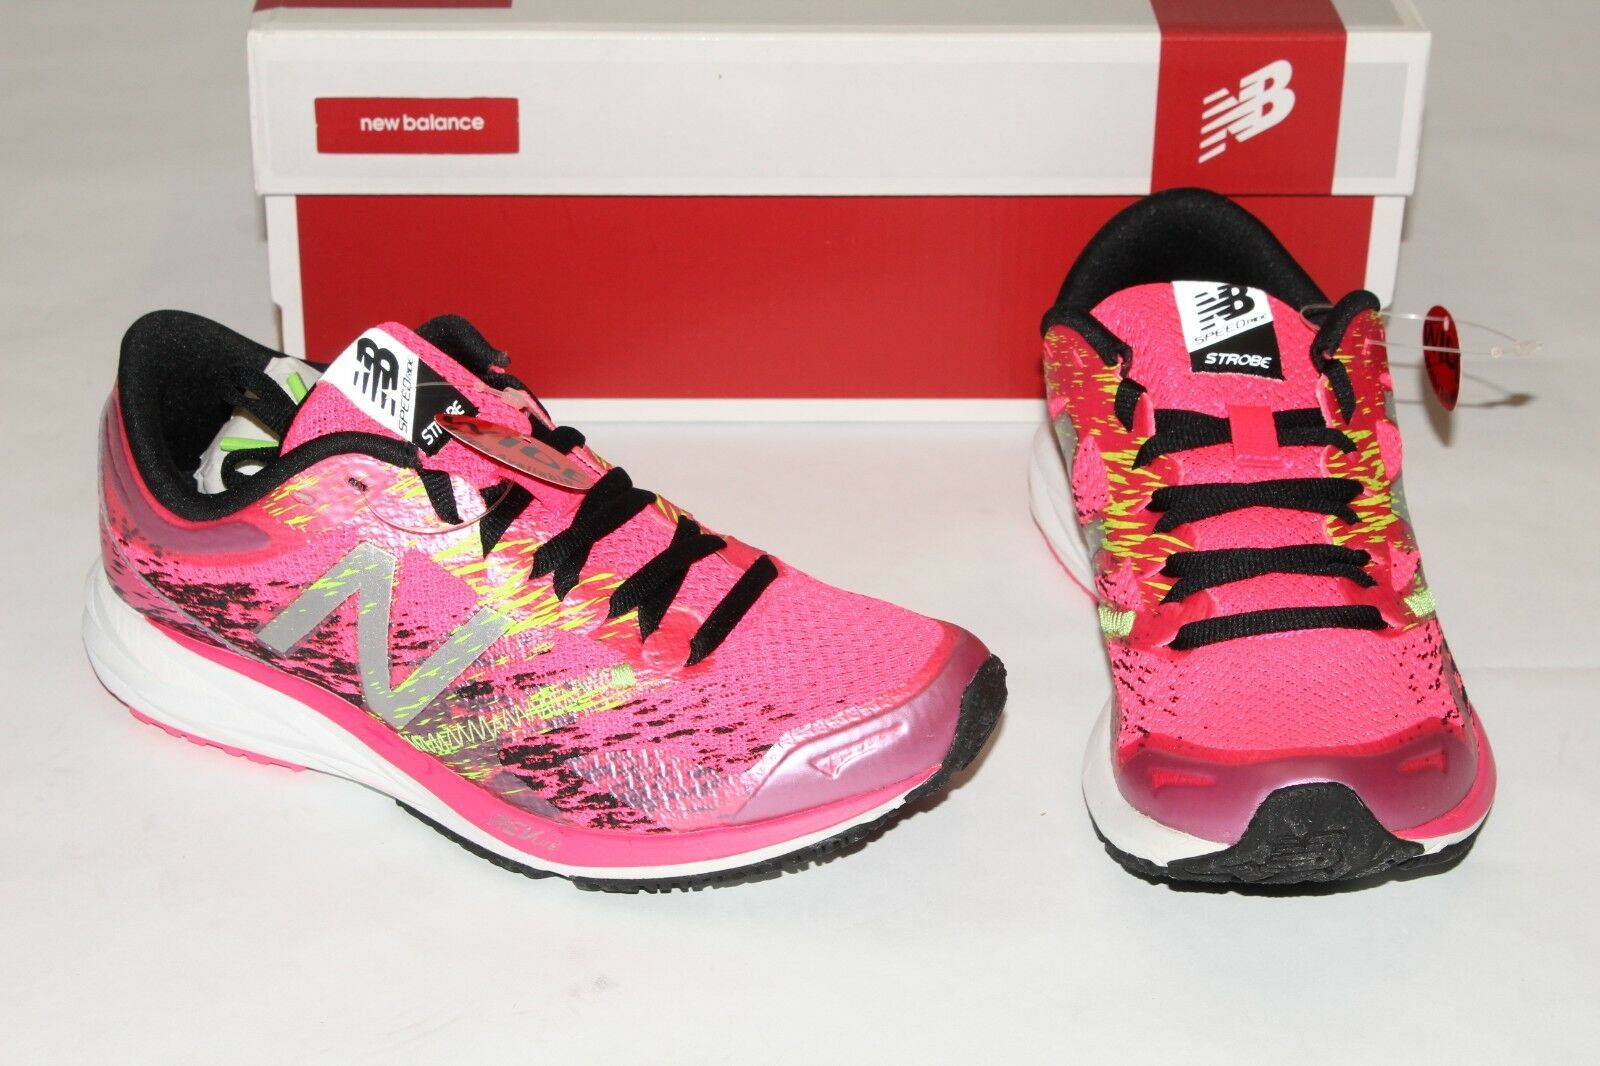 New Balance  Women's Wstro Running Exercise shoes 5 D Wide Pink  fast shipping worldwide